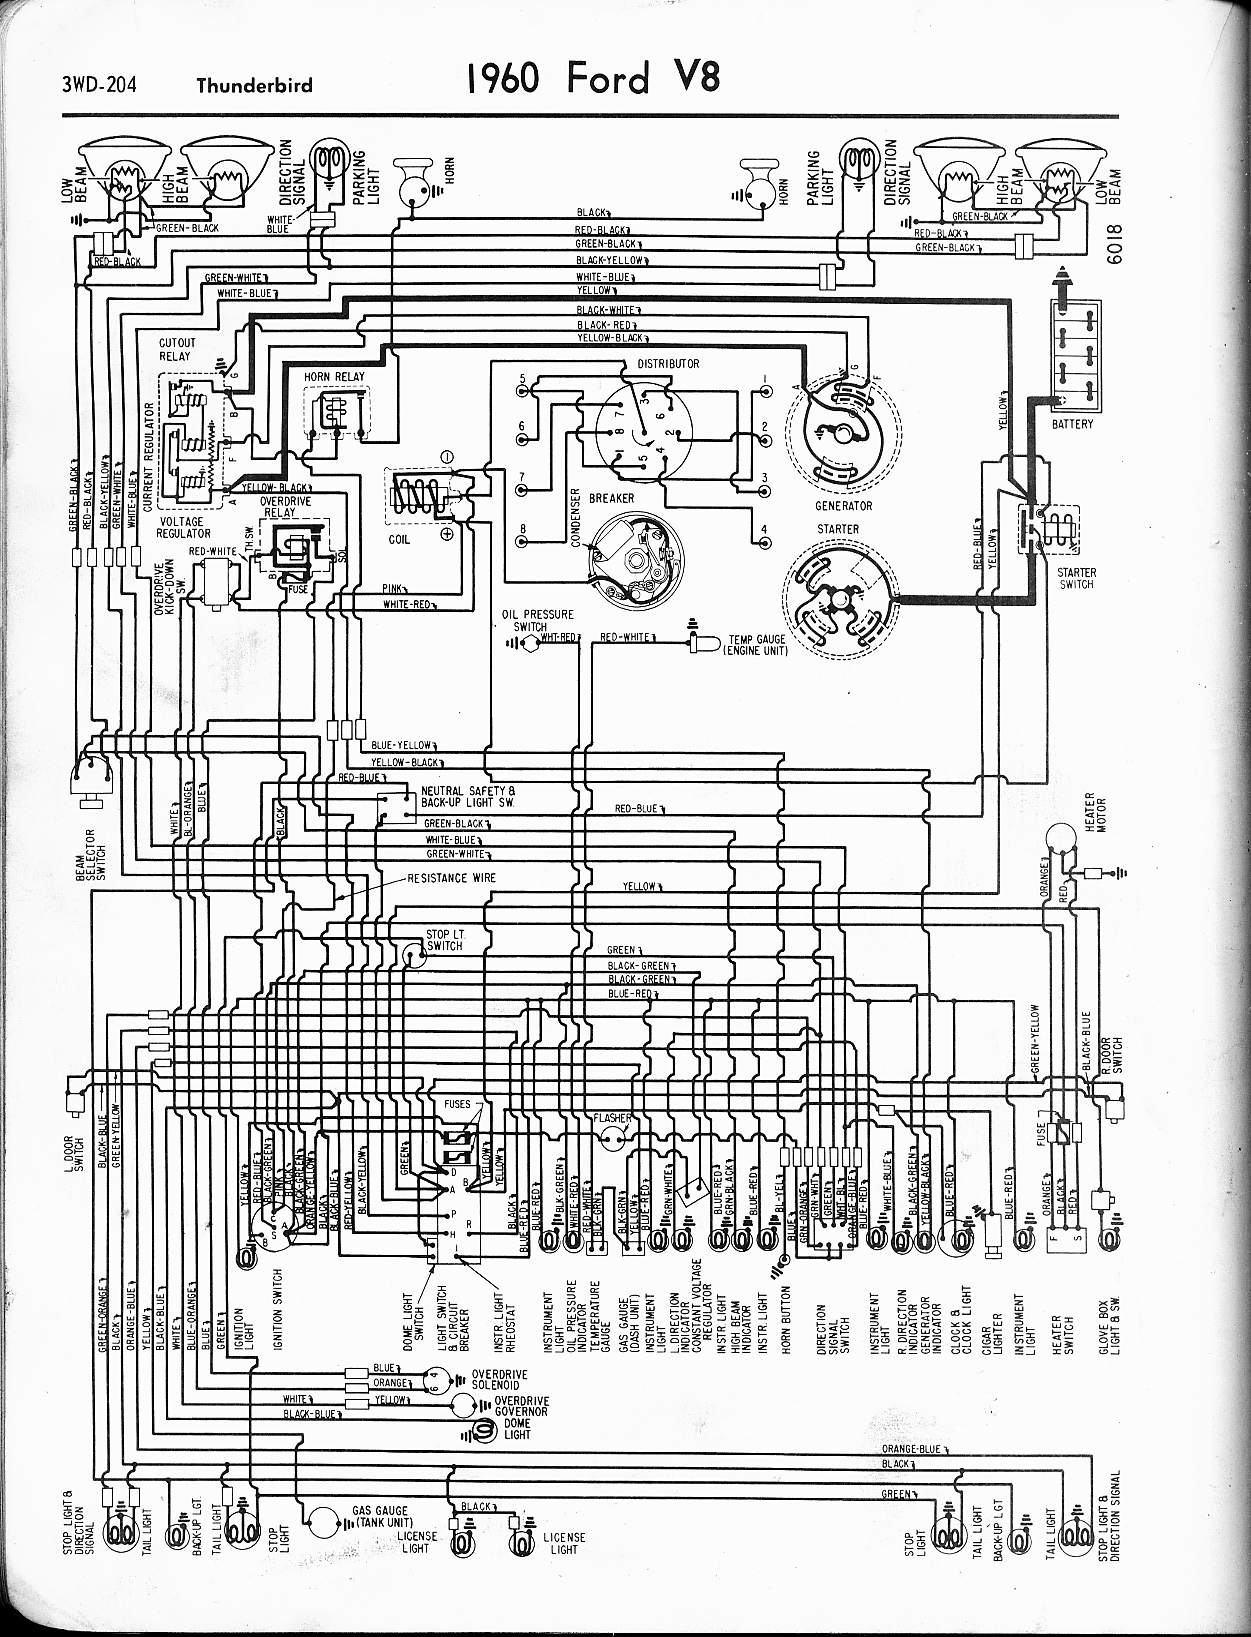 hight resolution of 1965 ford thunderbird wiring diagram wiring diagram third level 1965 ford t bird hard top 1965 ford t bird wiring